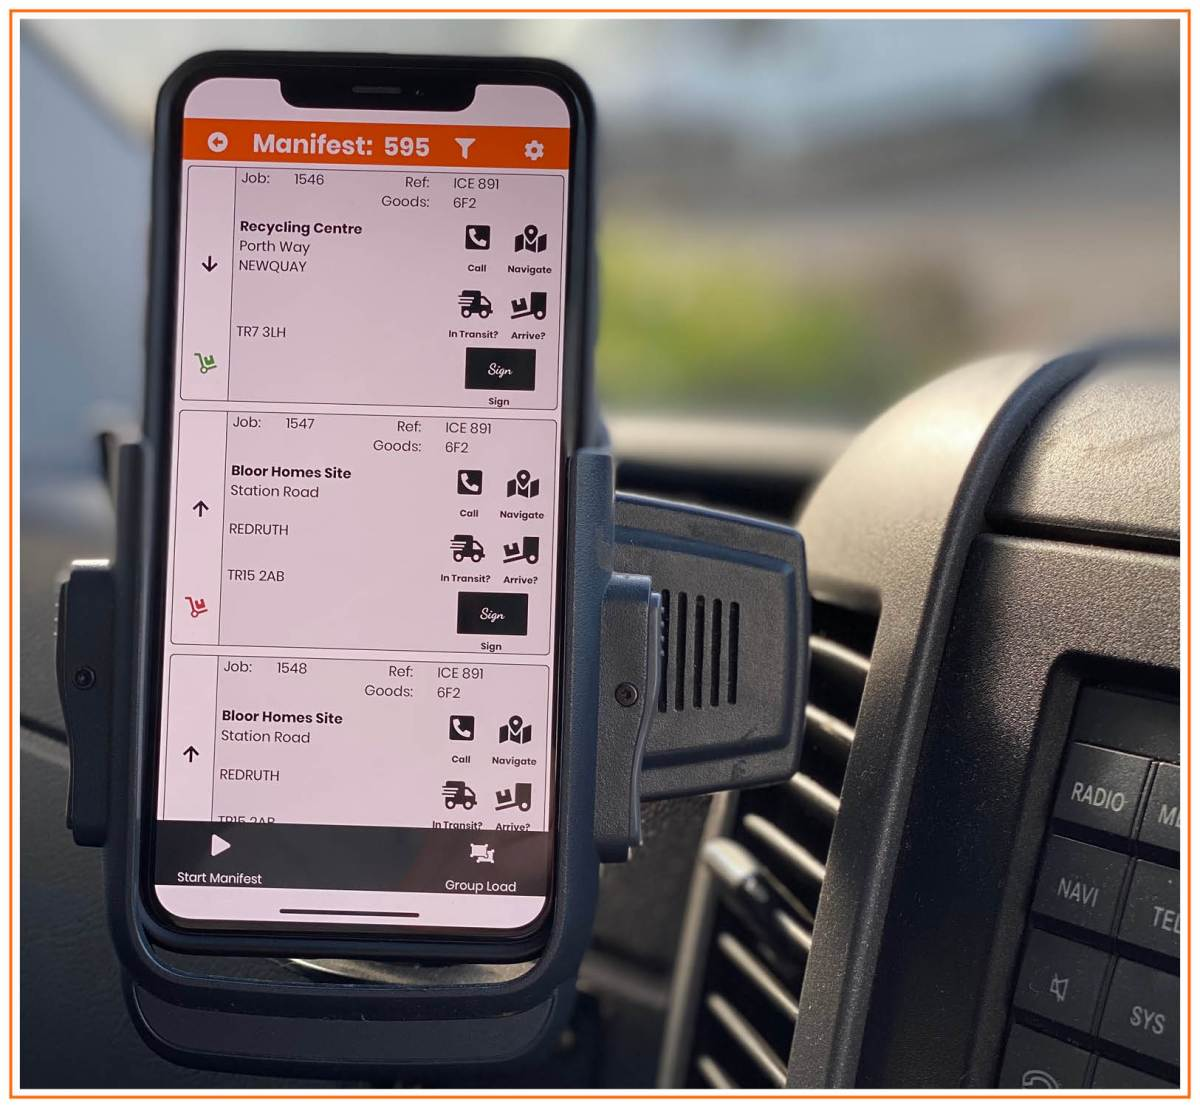 https://i1.wp.com/haultech.co.uk/wp-content/uploads/2021/03/HaulTechs-e-POD-Delivers-Safety-and-Efficiency-for-Hauliers-1.jpg?fit=1200%2C1108&ssl=1